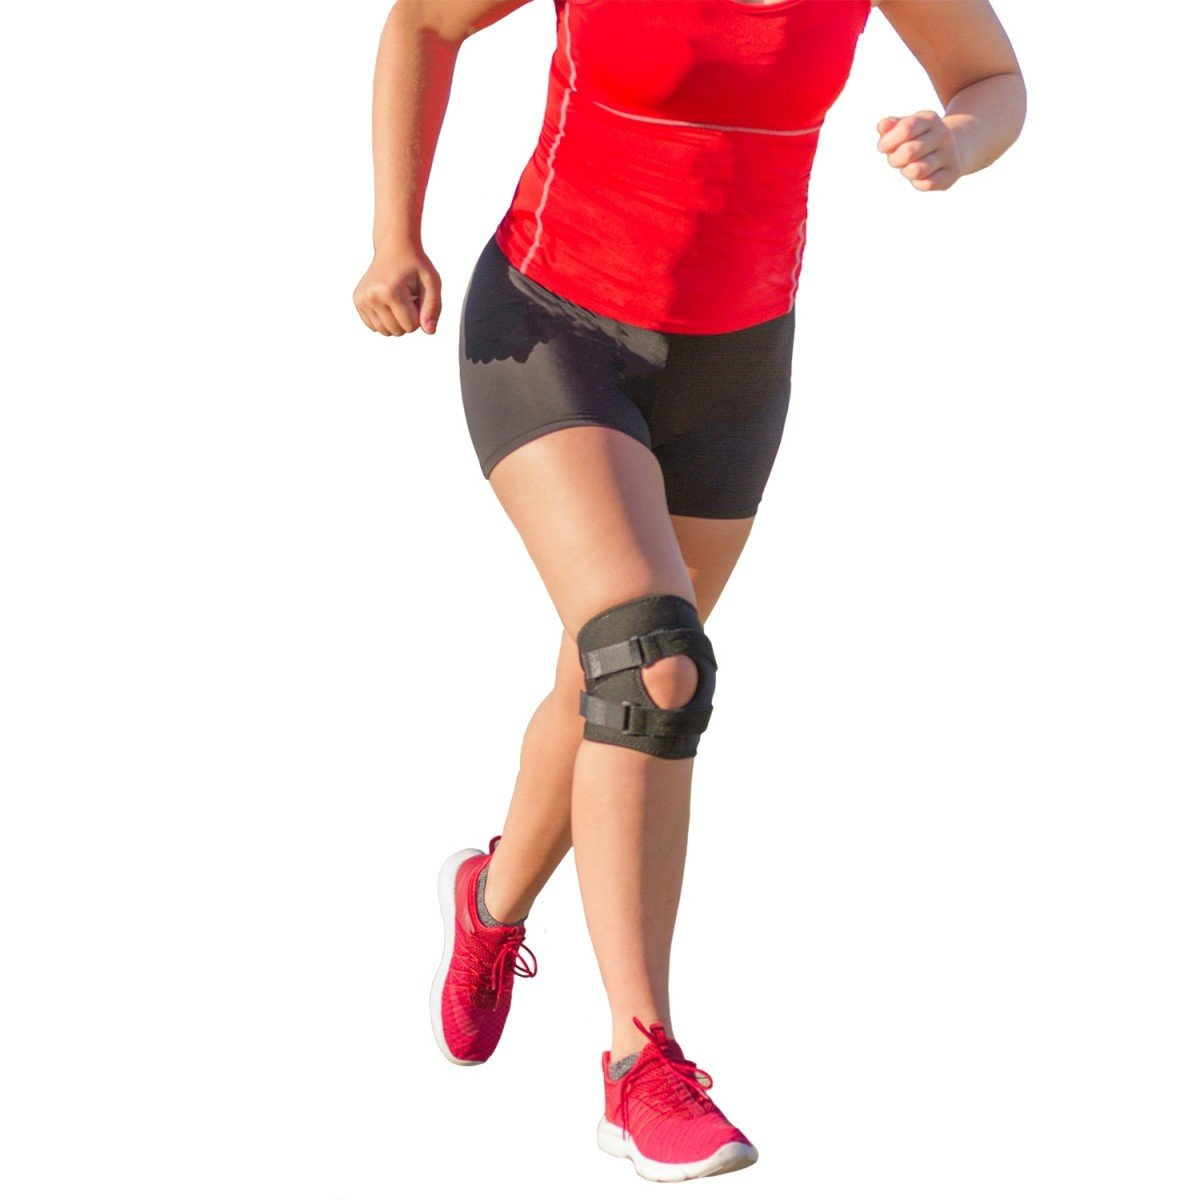 BraceAbility Patellar Tracking Short Knee Brace | Running, Exercise & Basketball Support Sleeve Stabilizer for Post Kneecap Dislocation, Tendonitis, Patellofemoral Pain & MCL/LCL Injuries (XL) by BraceAbility